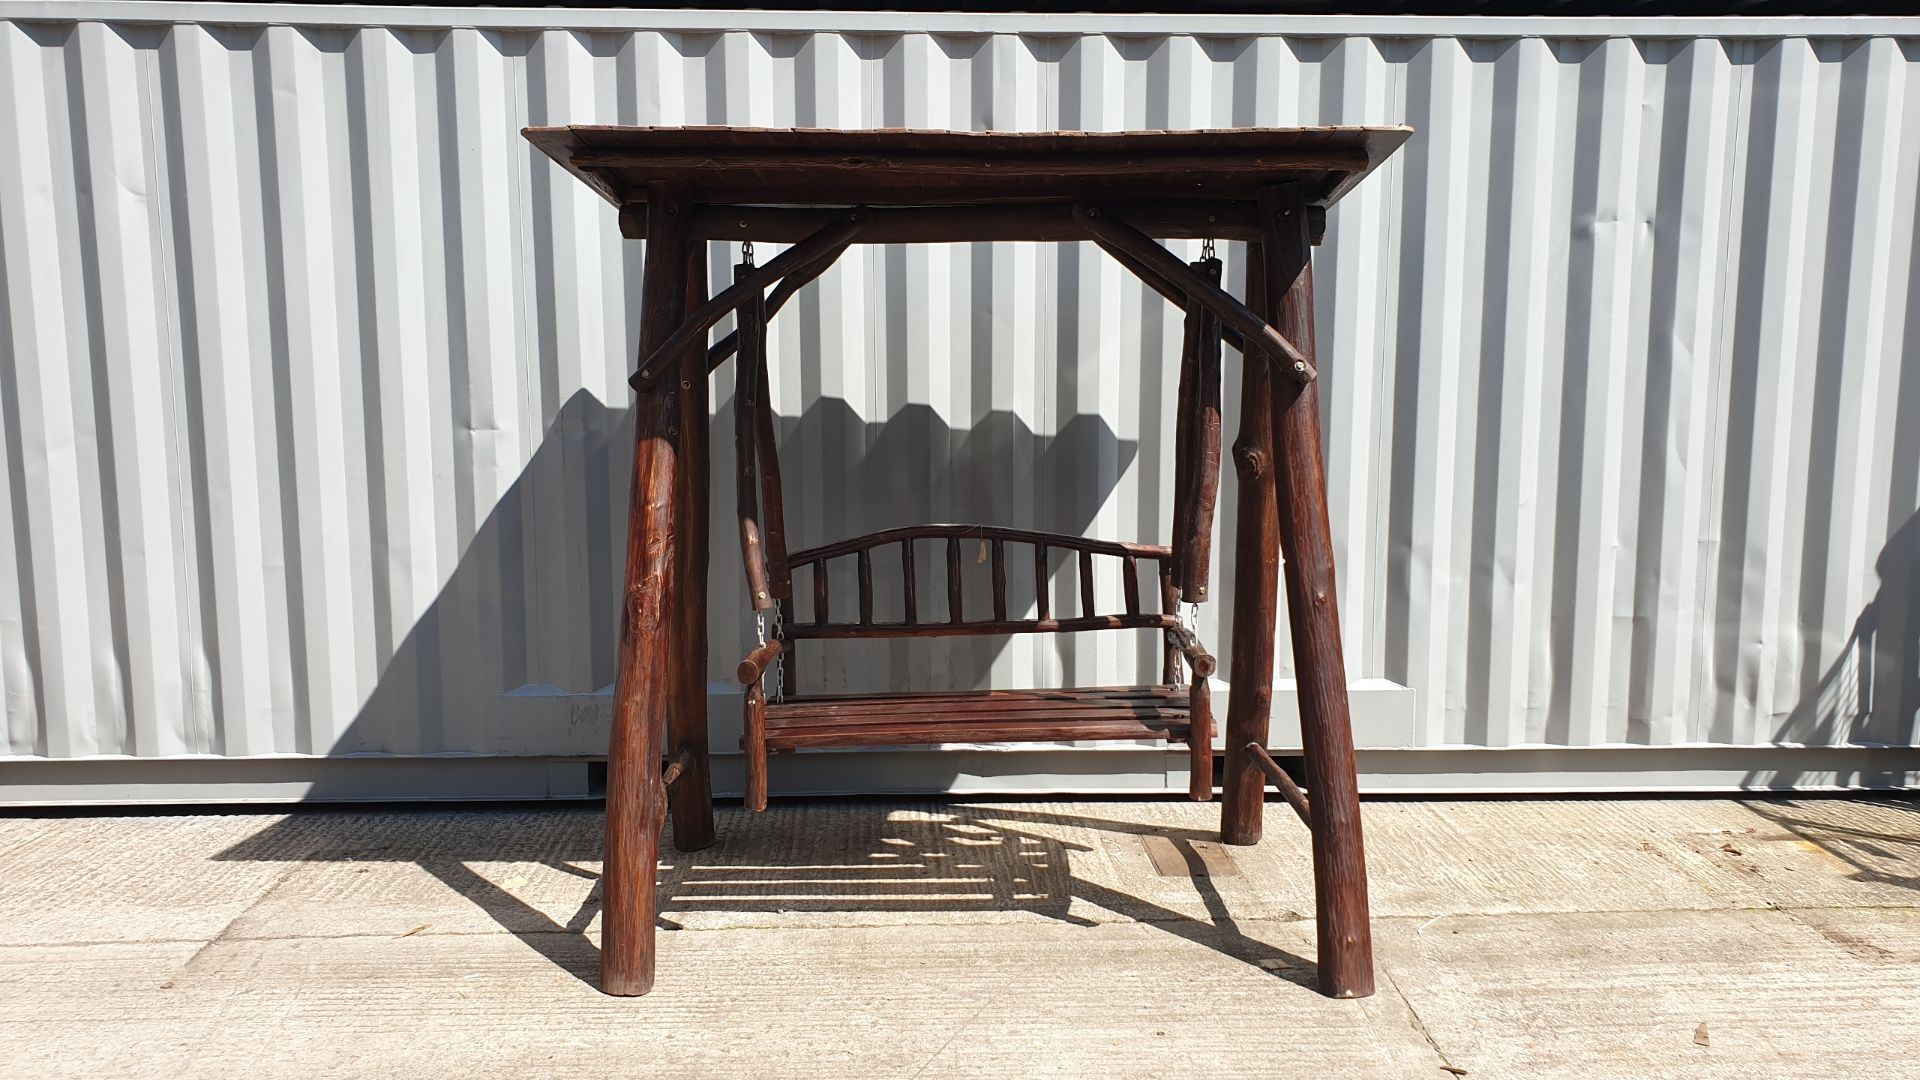 Lot 19 - BRAND NEW SOLID TEAK ROOT WOODEN 2 SEATER SWING 250 X 120 X 200cm RRP £875